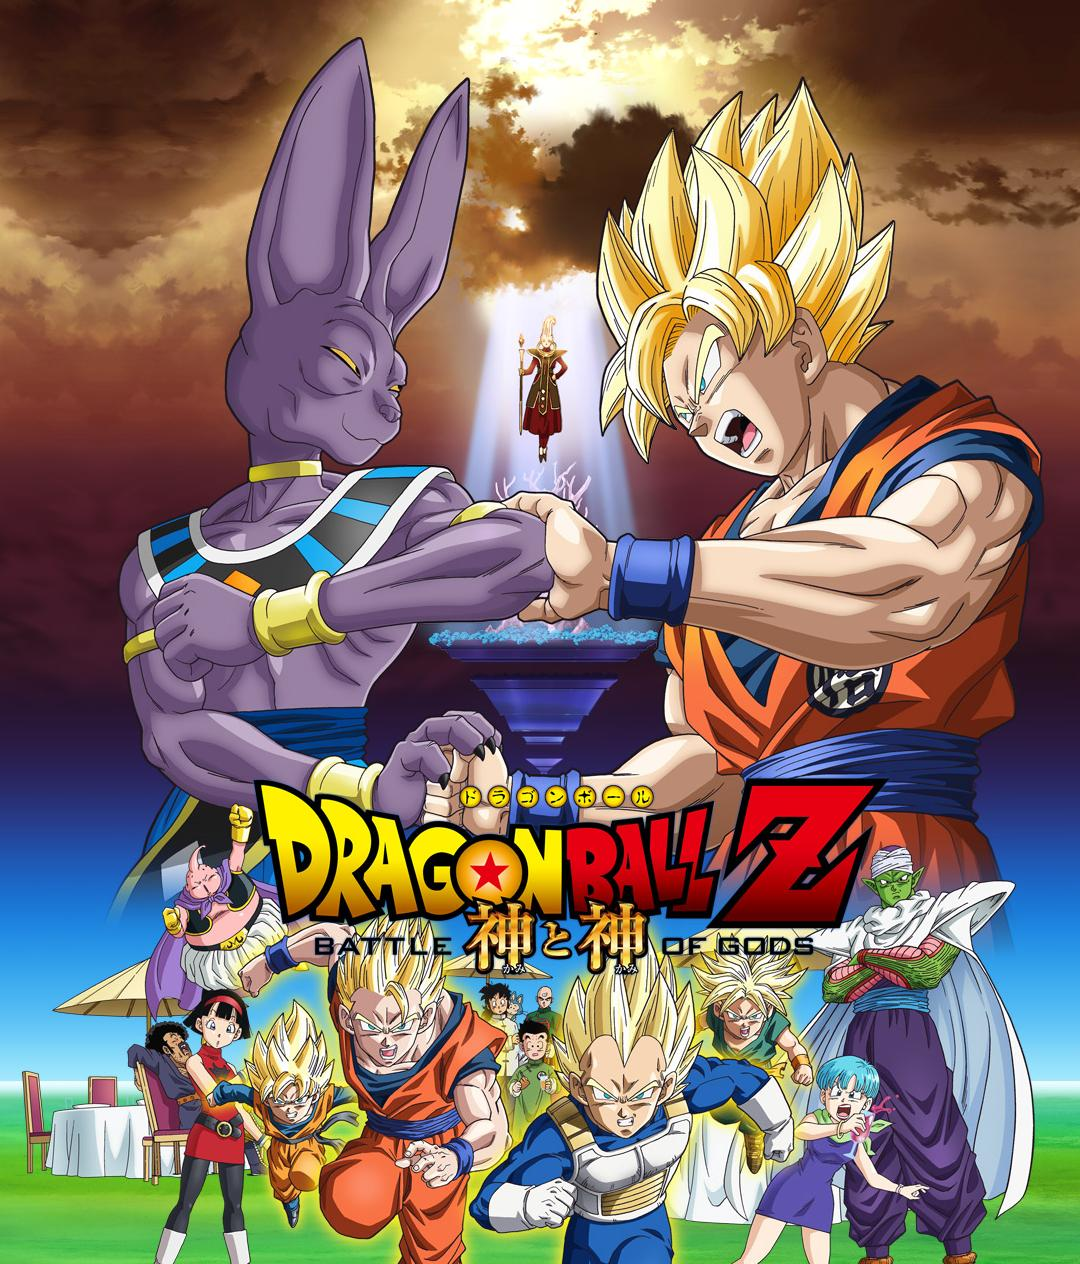 [Anime]Dragon Ball Super La nueva temporada